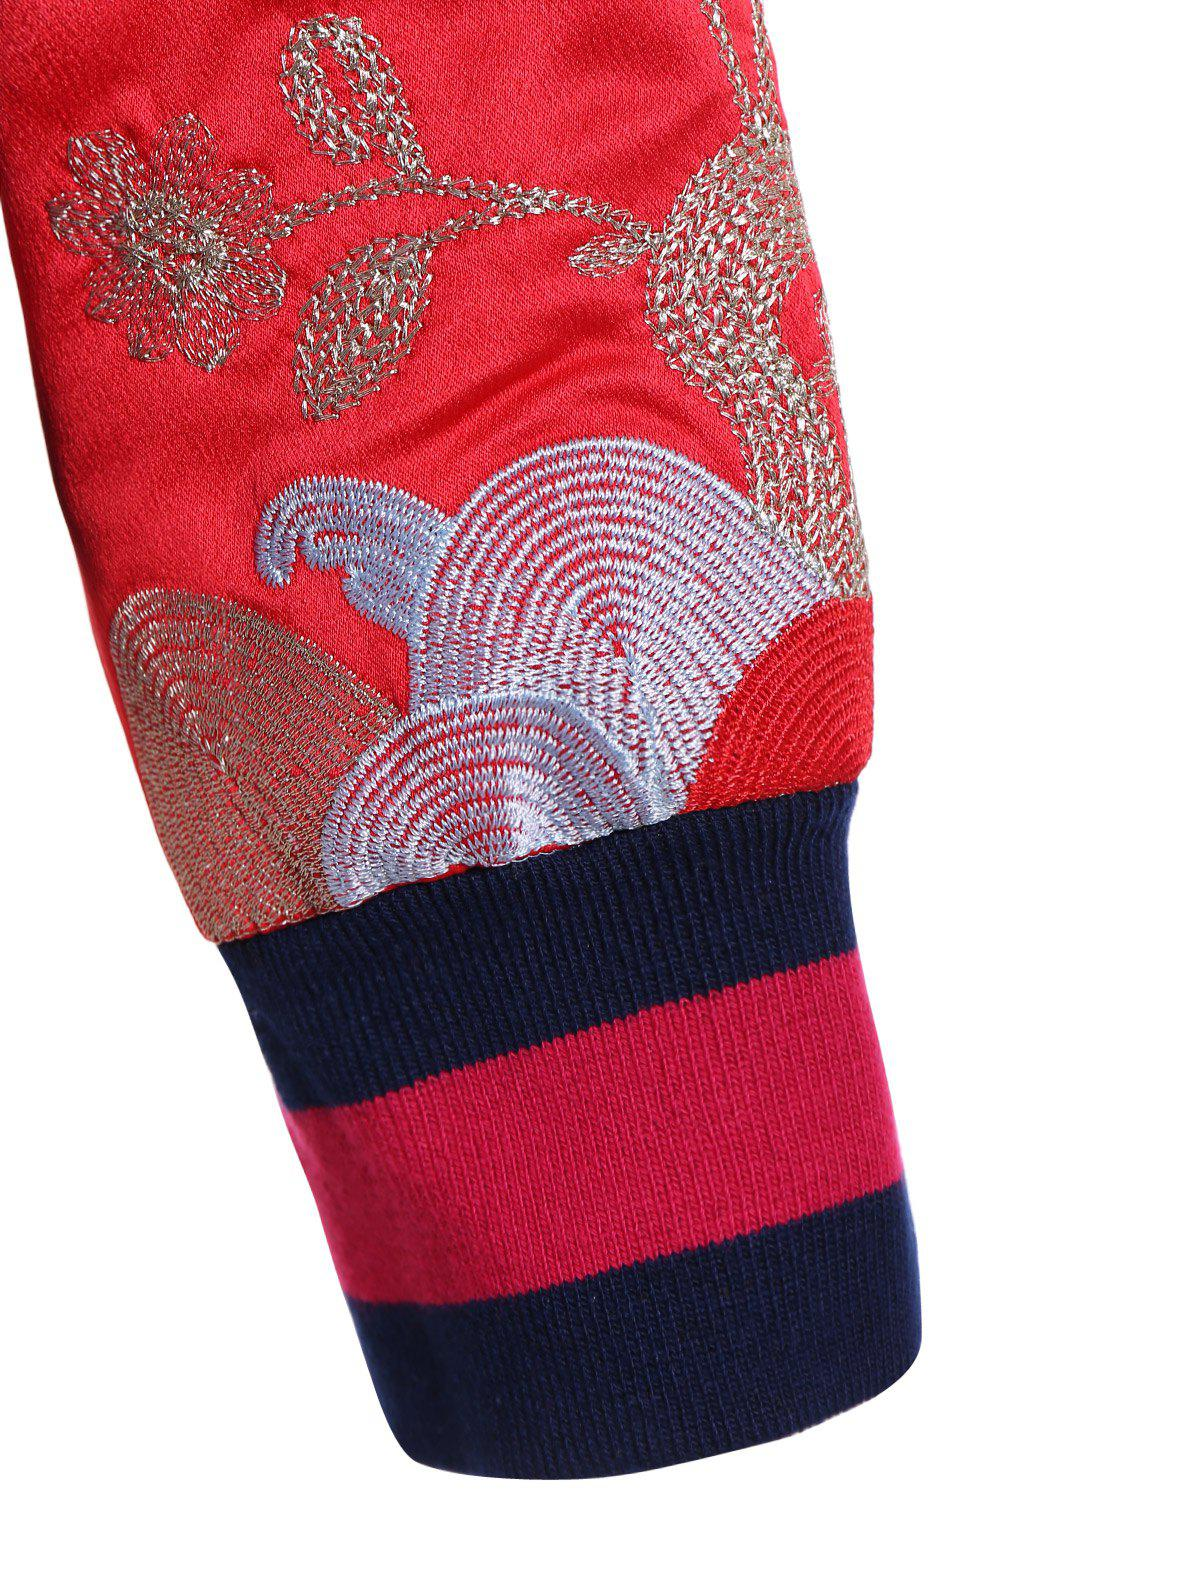 Raglan Sleeve Embroidery Bomber Jacket - BRIGHT RED ONE SIZE